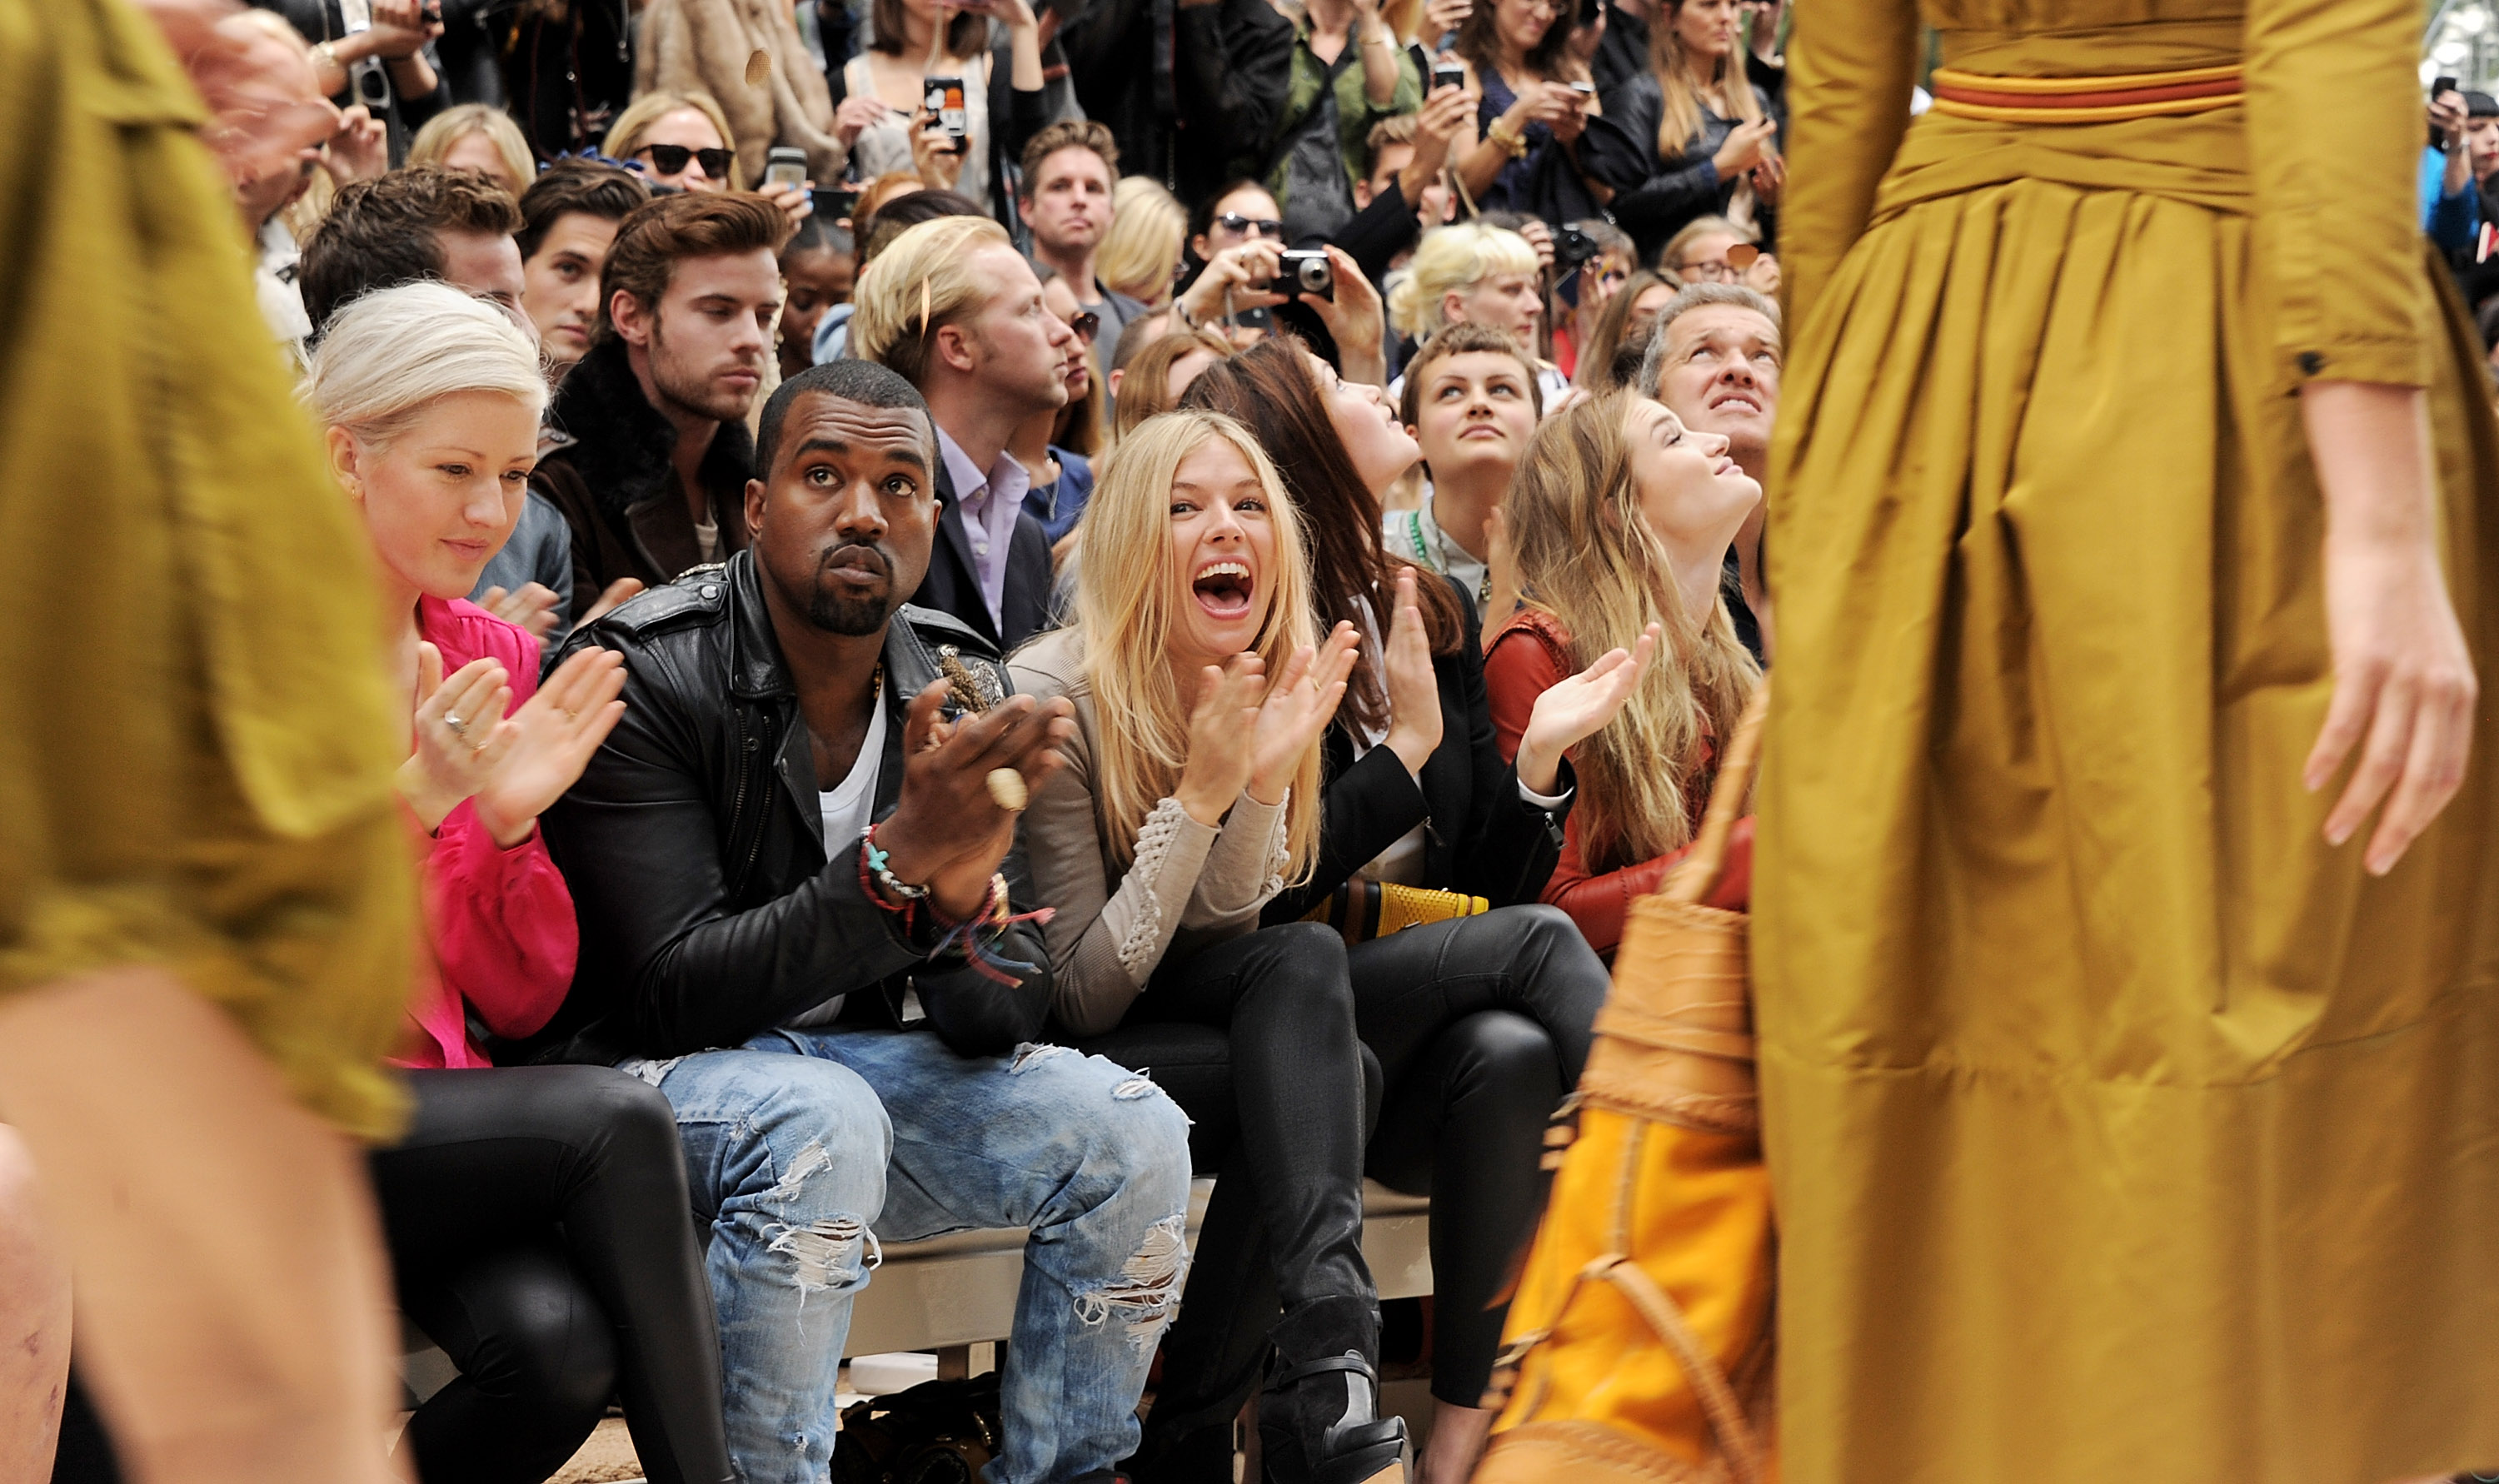 Kanye West and Sienna Miller at the Burberry Spring/Summer 2012 fashion show.